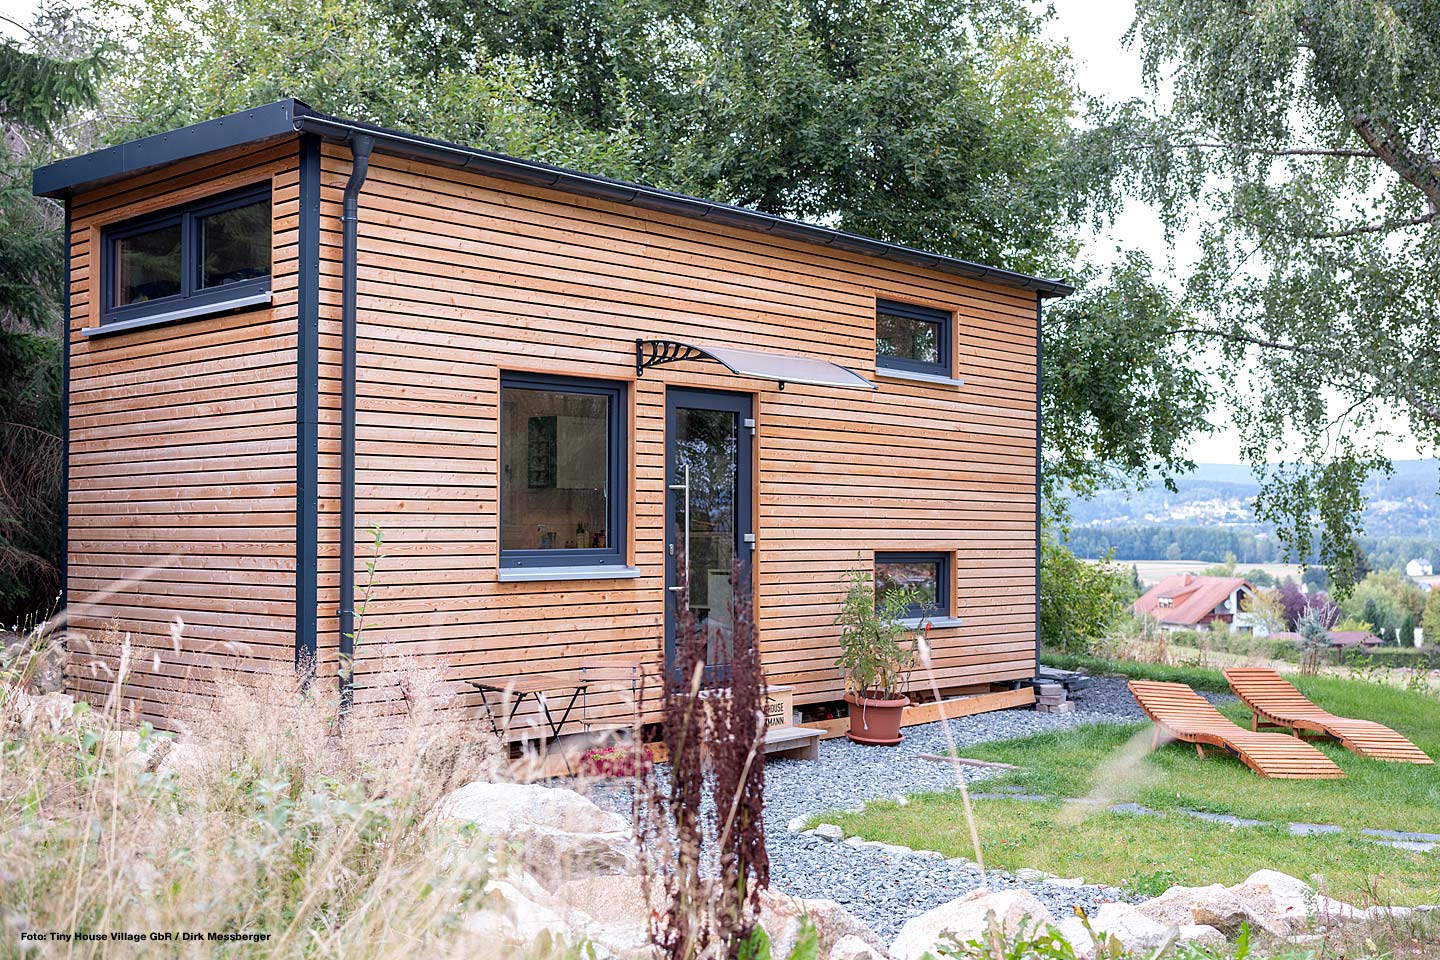 STEELROOTS® als Fundament für Tiny Houses